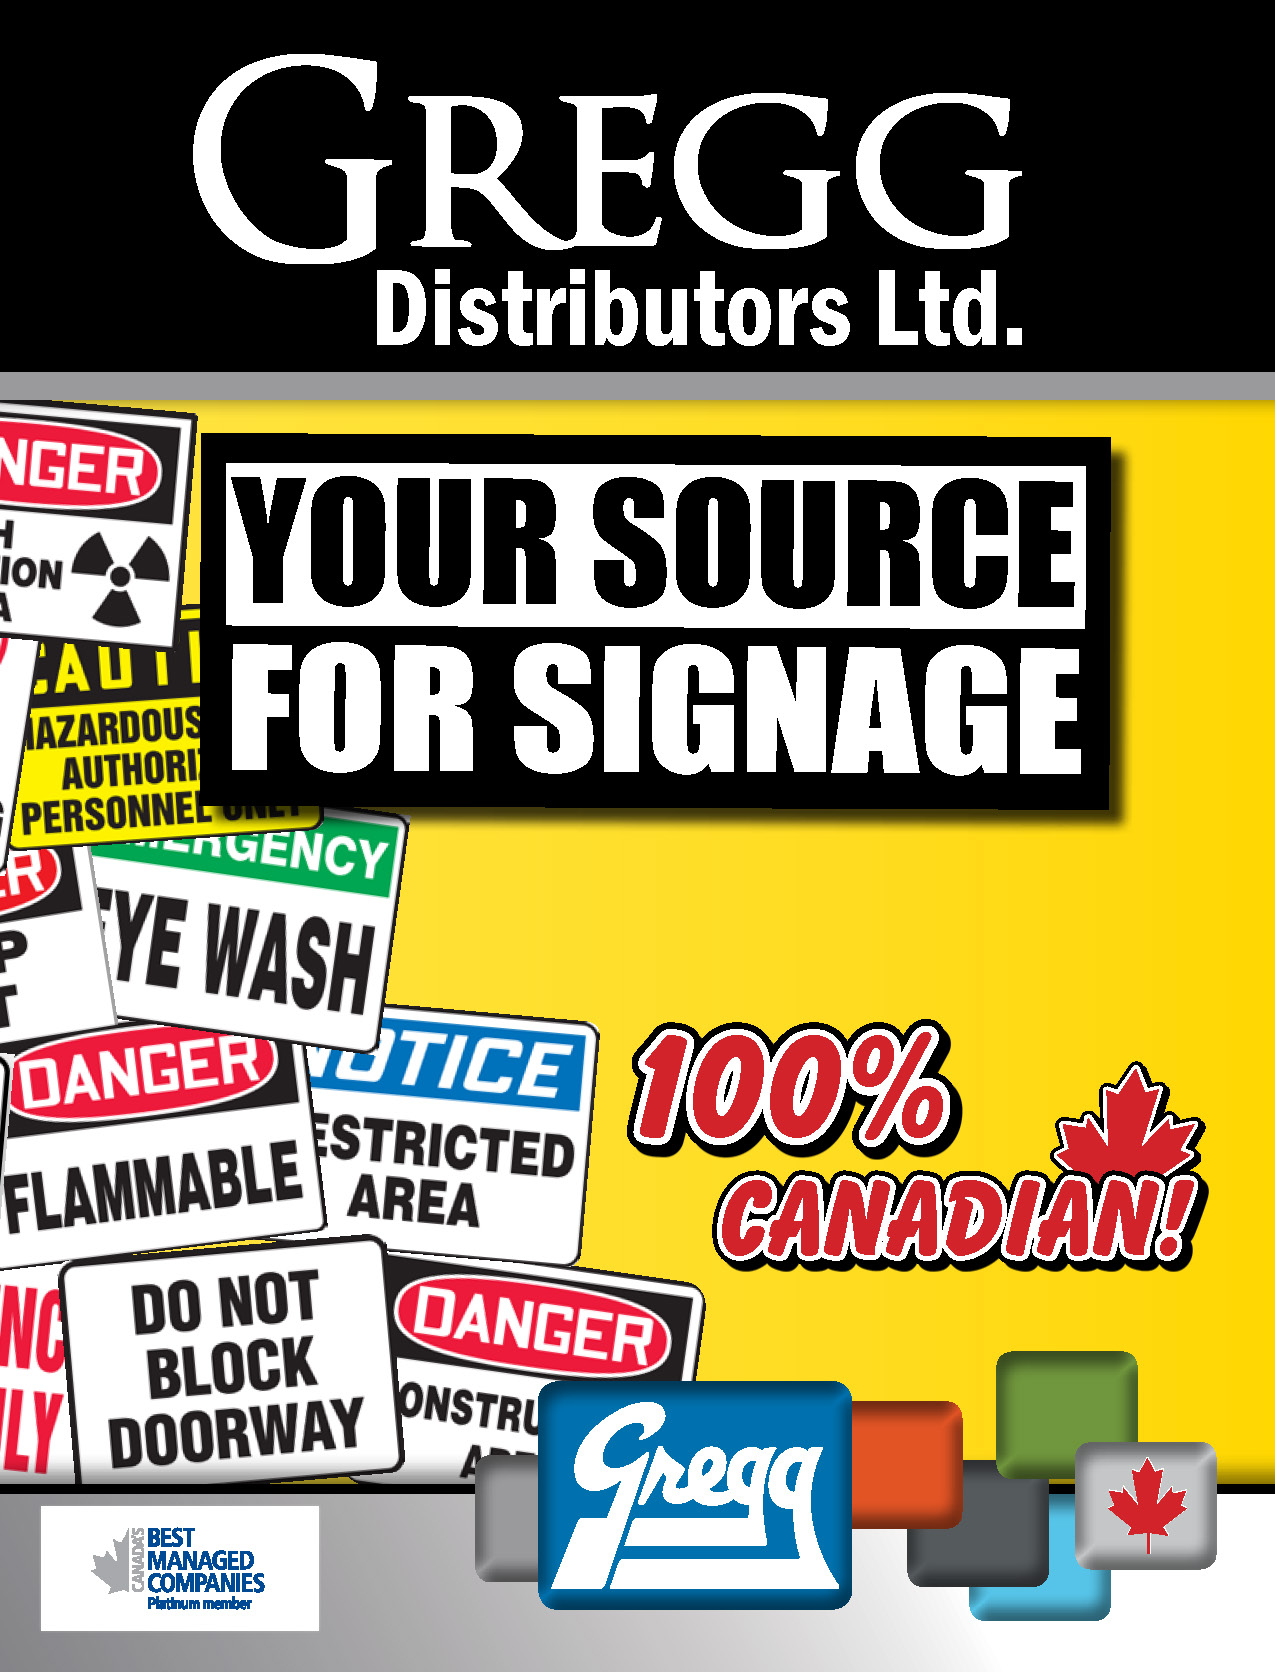 Gregg's Your Source for Signage Catalogue Cover